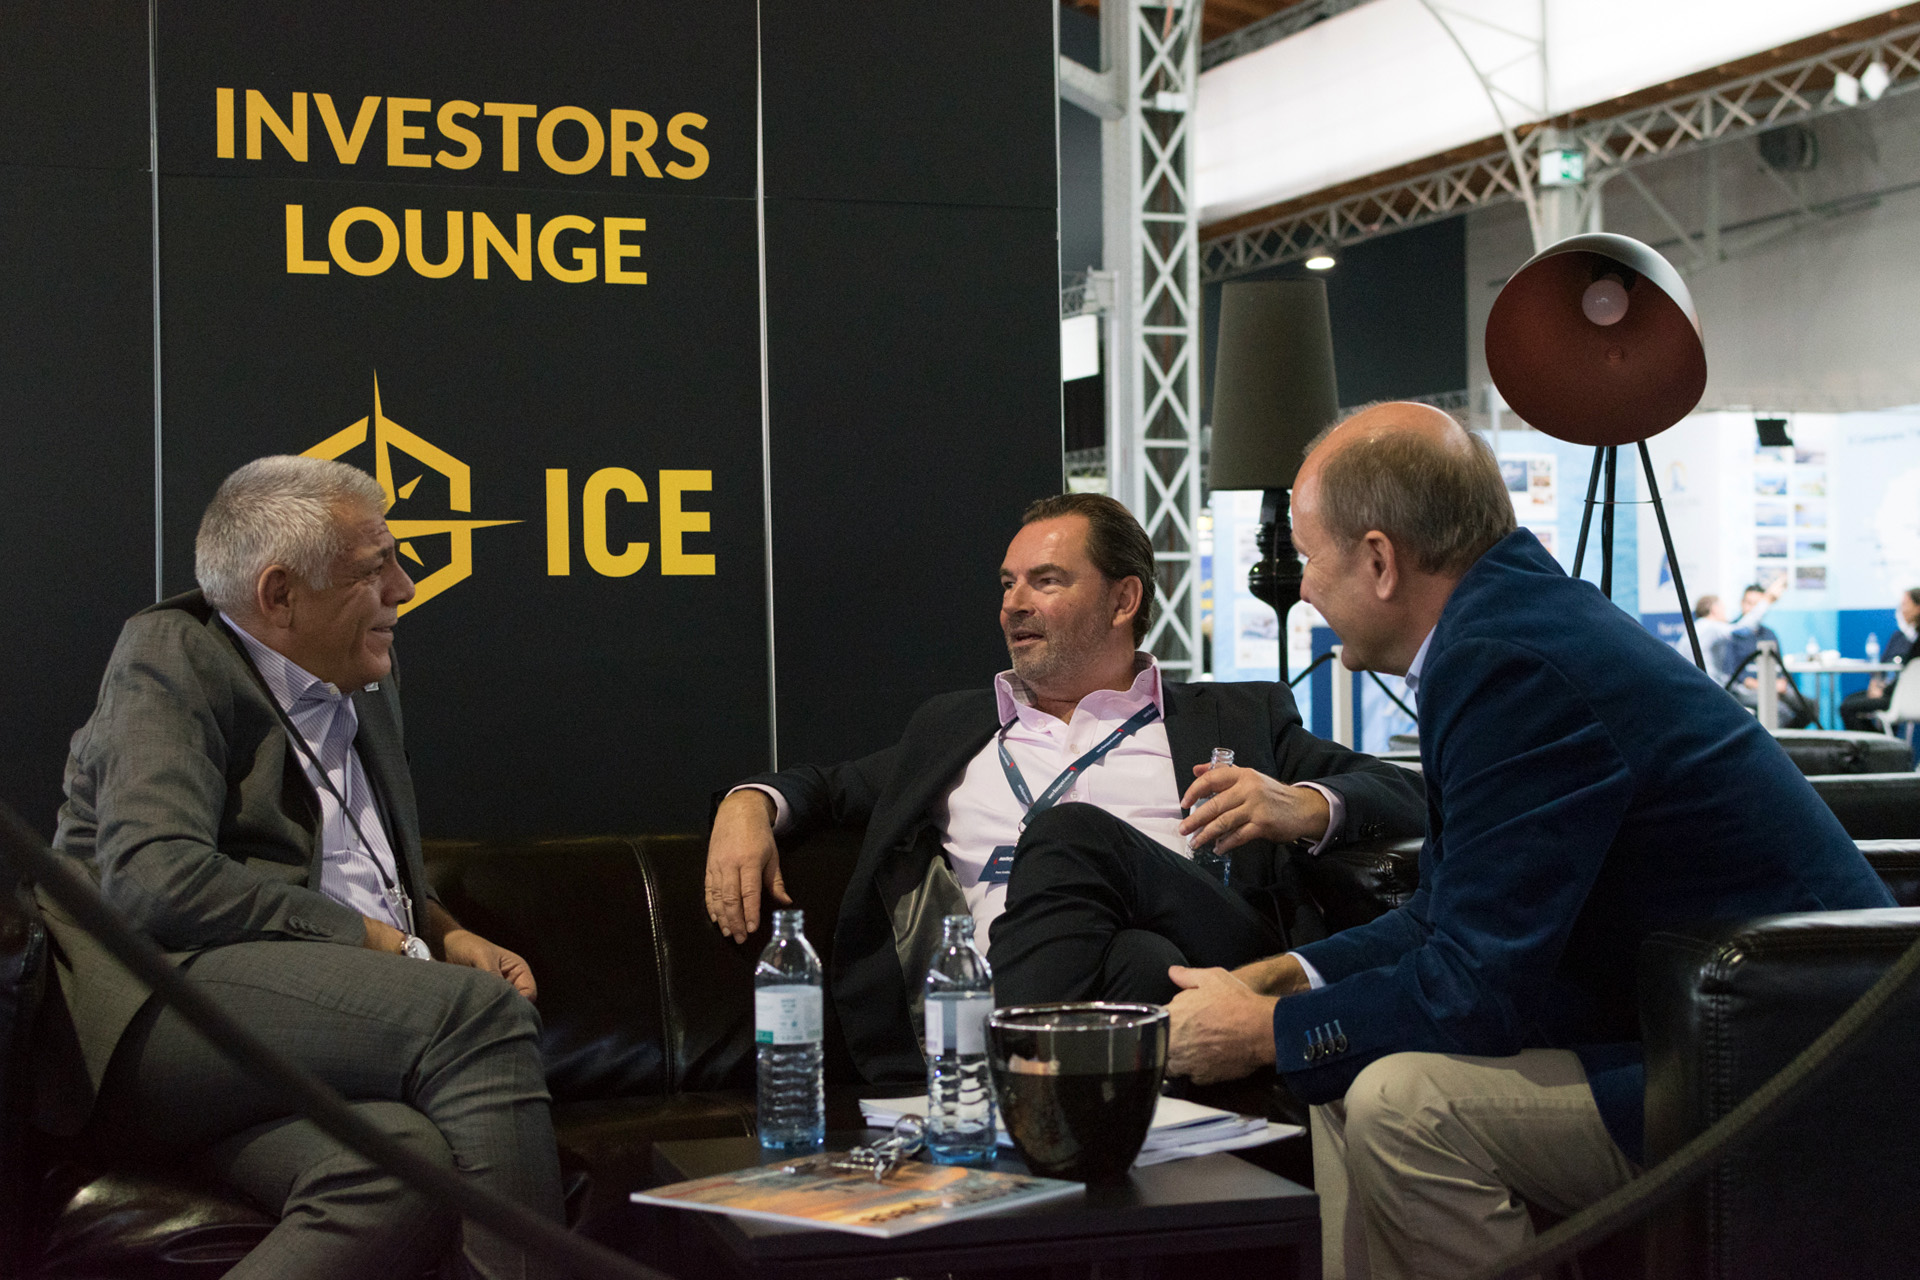 Investors lounge at International Charter Expo